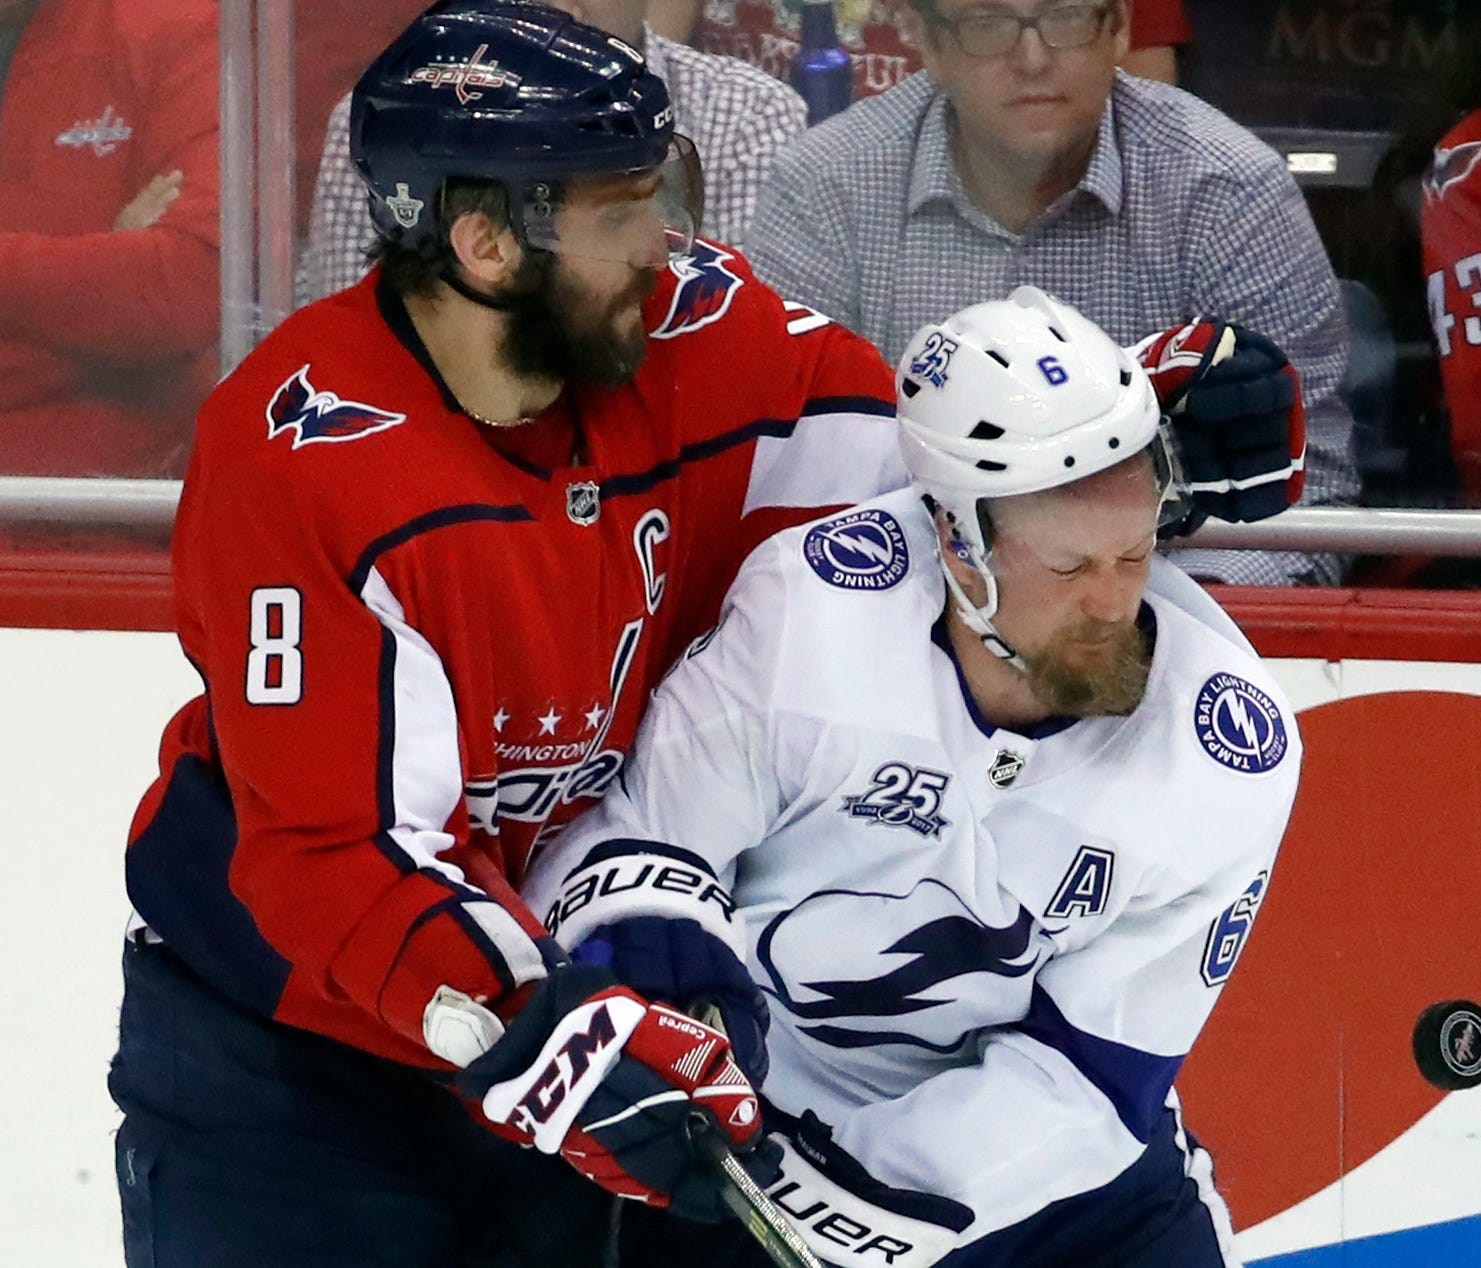 Washington Capitals left wing Alex Ovechkin (8), from Russia, collides with Tampa Bay Lightning defenseman Anton Stralman (6), from Sweden, during the third period of Game 6 of the NHL Eastern Conference finals hockey playoff series, Monday, May 21,